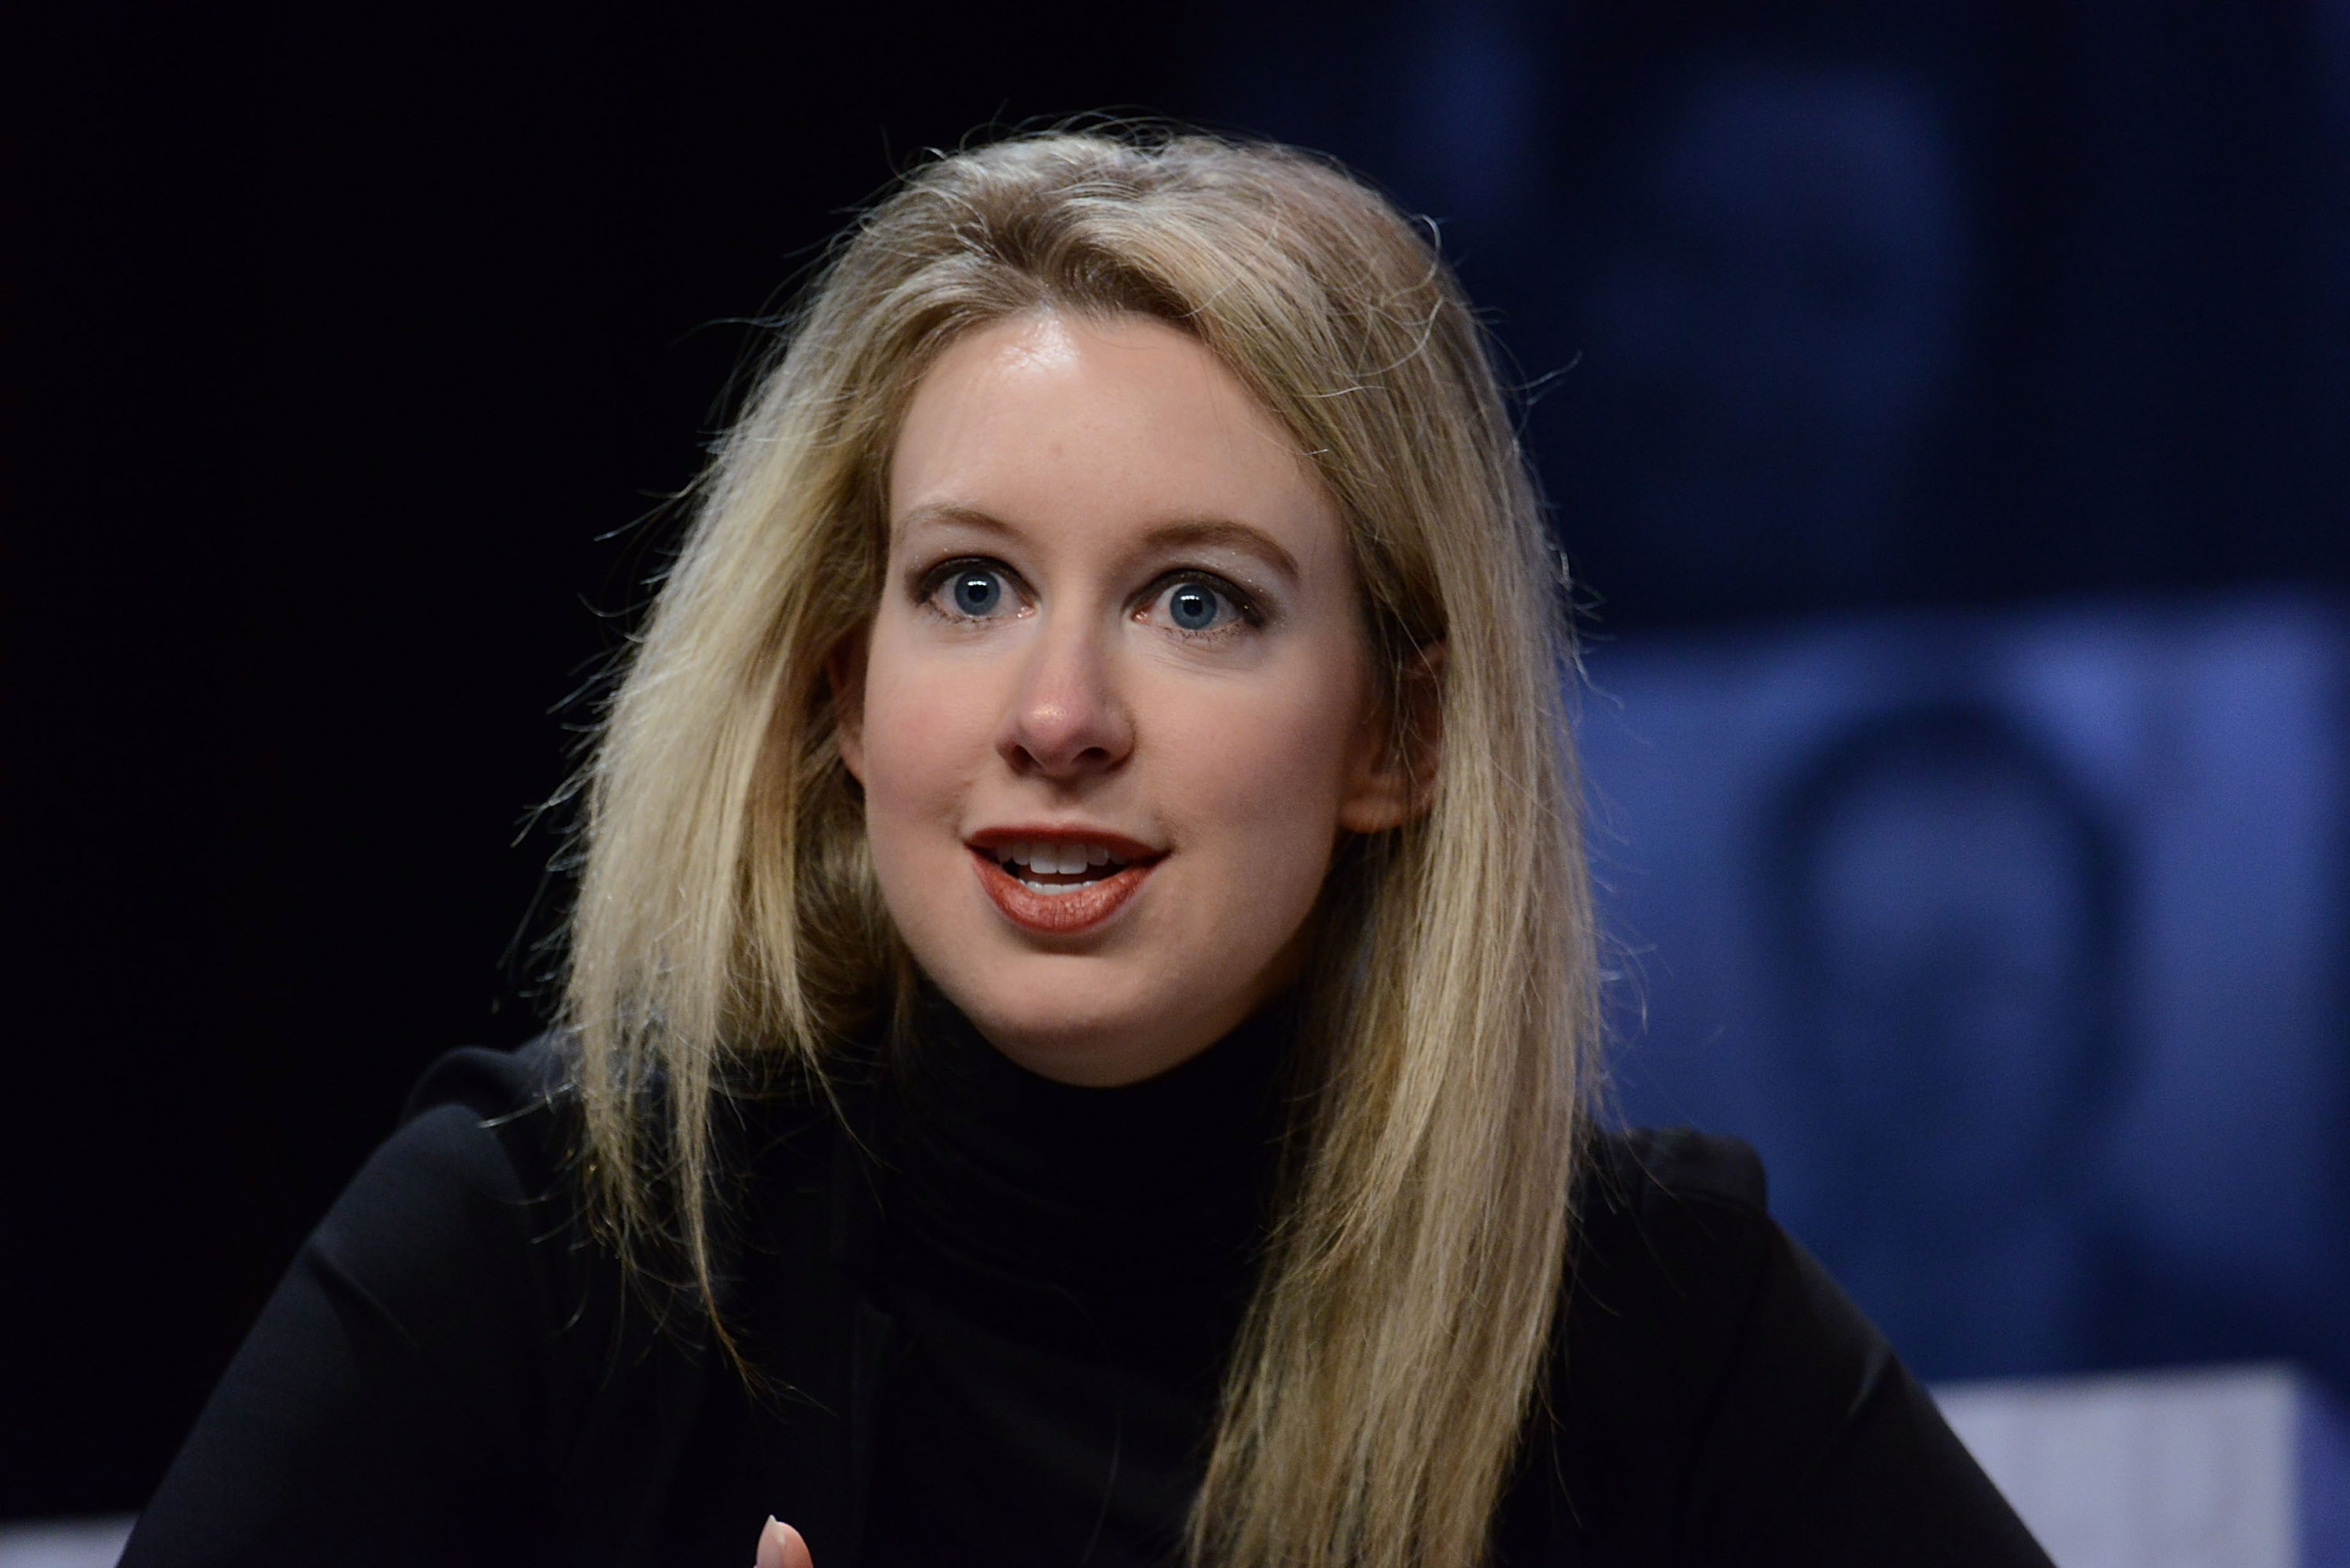 Disgraced blood-testing startup Theranos charged with 'massive' fraud by SEC